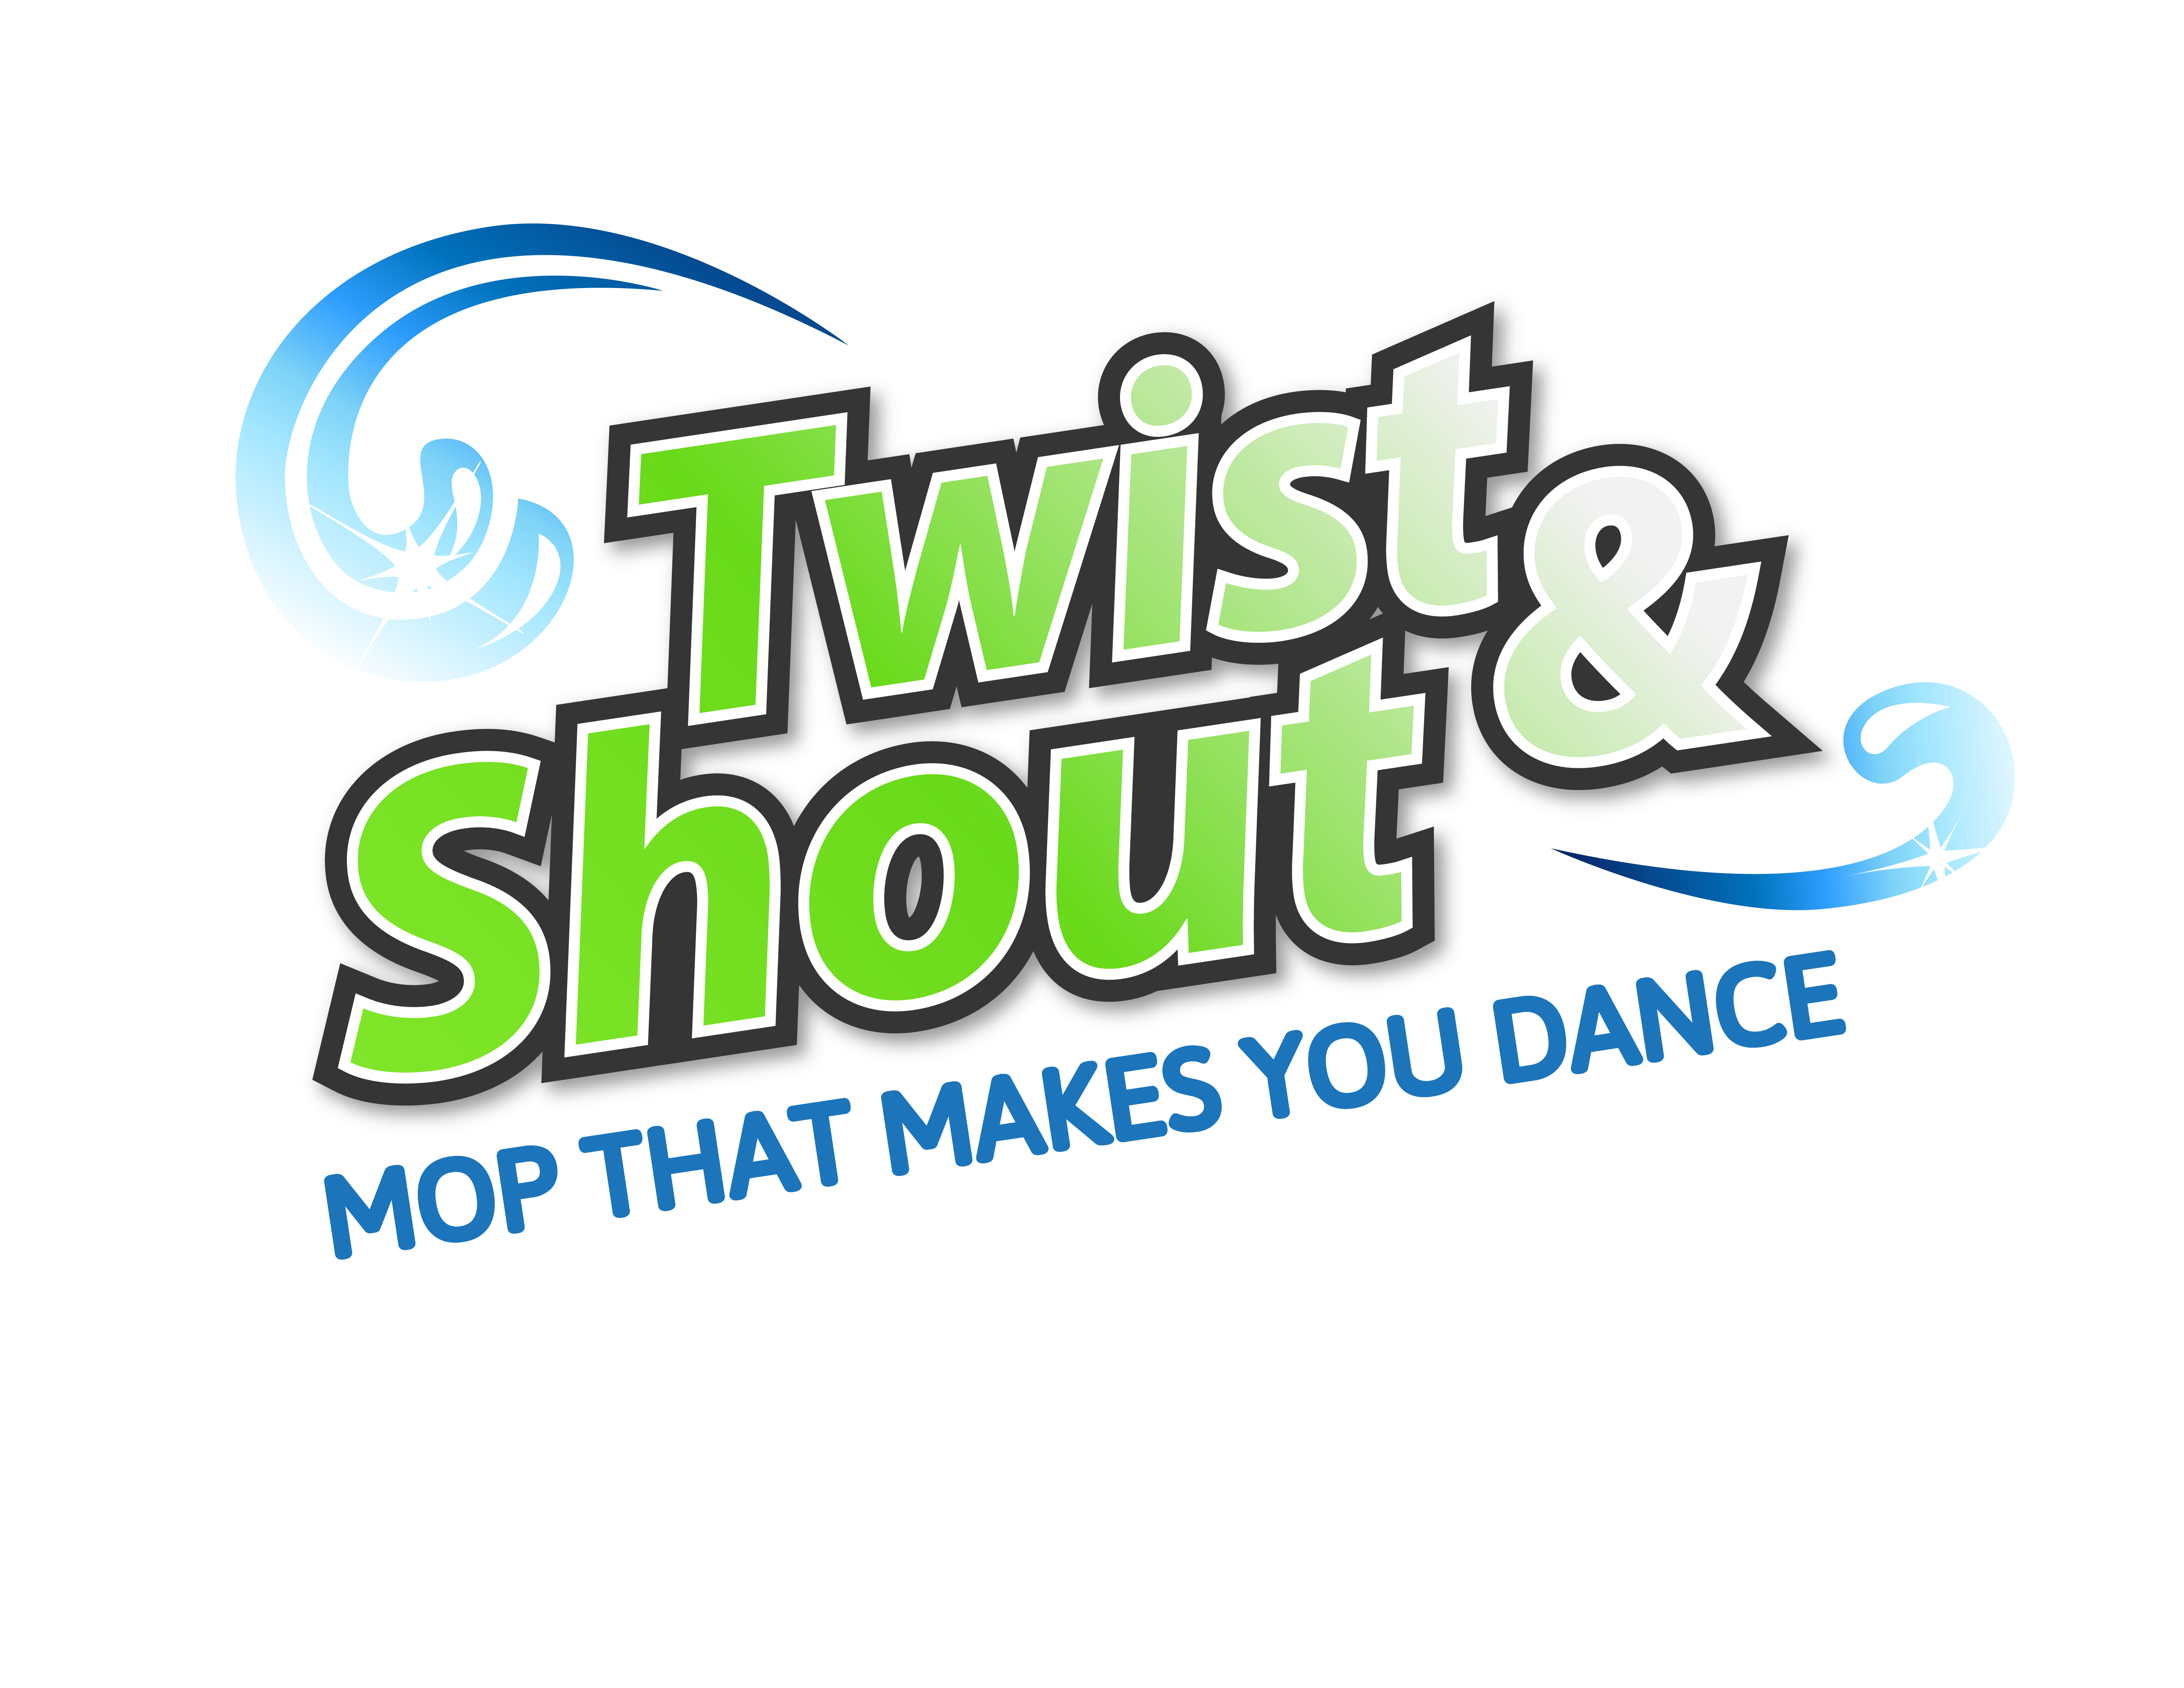 Twist and shout mop review - Twist And Shout Mop Review 36